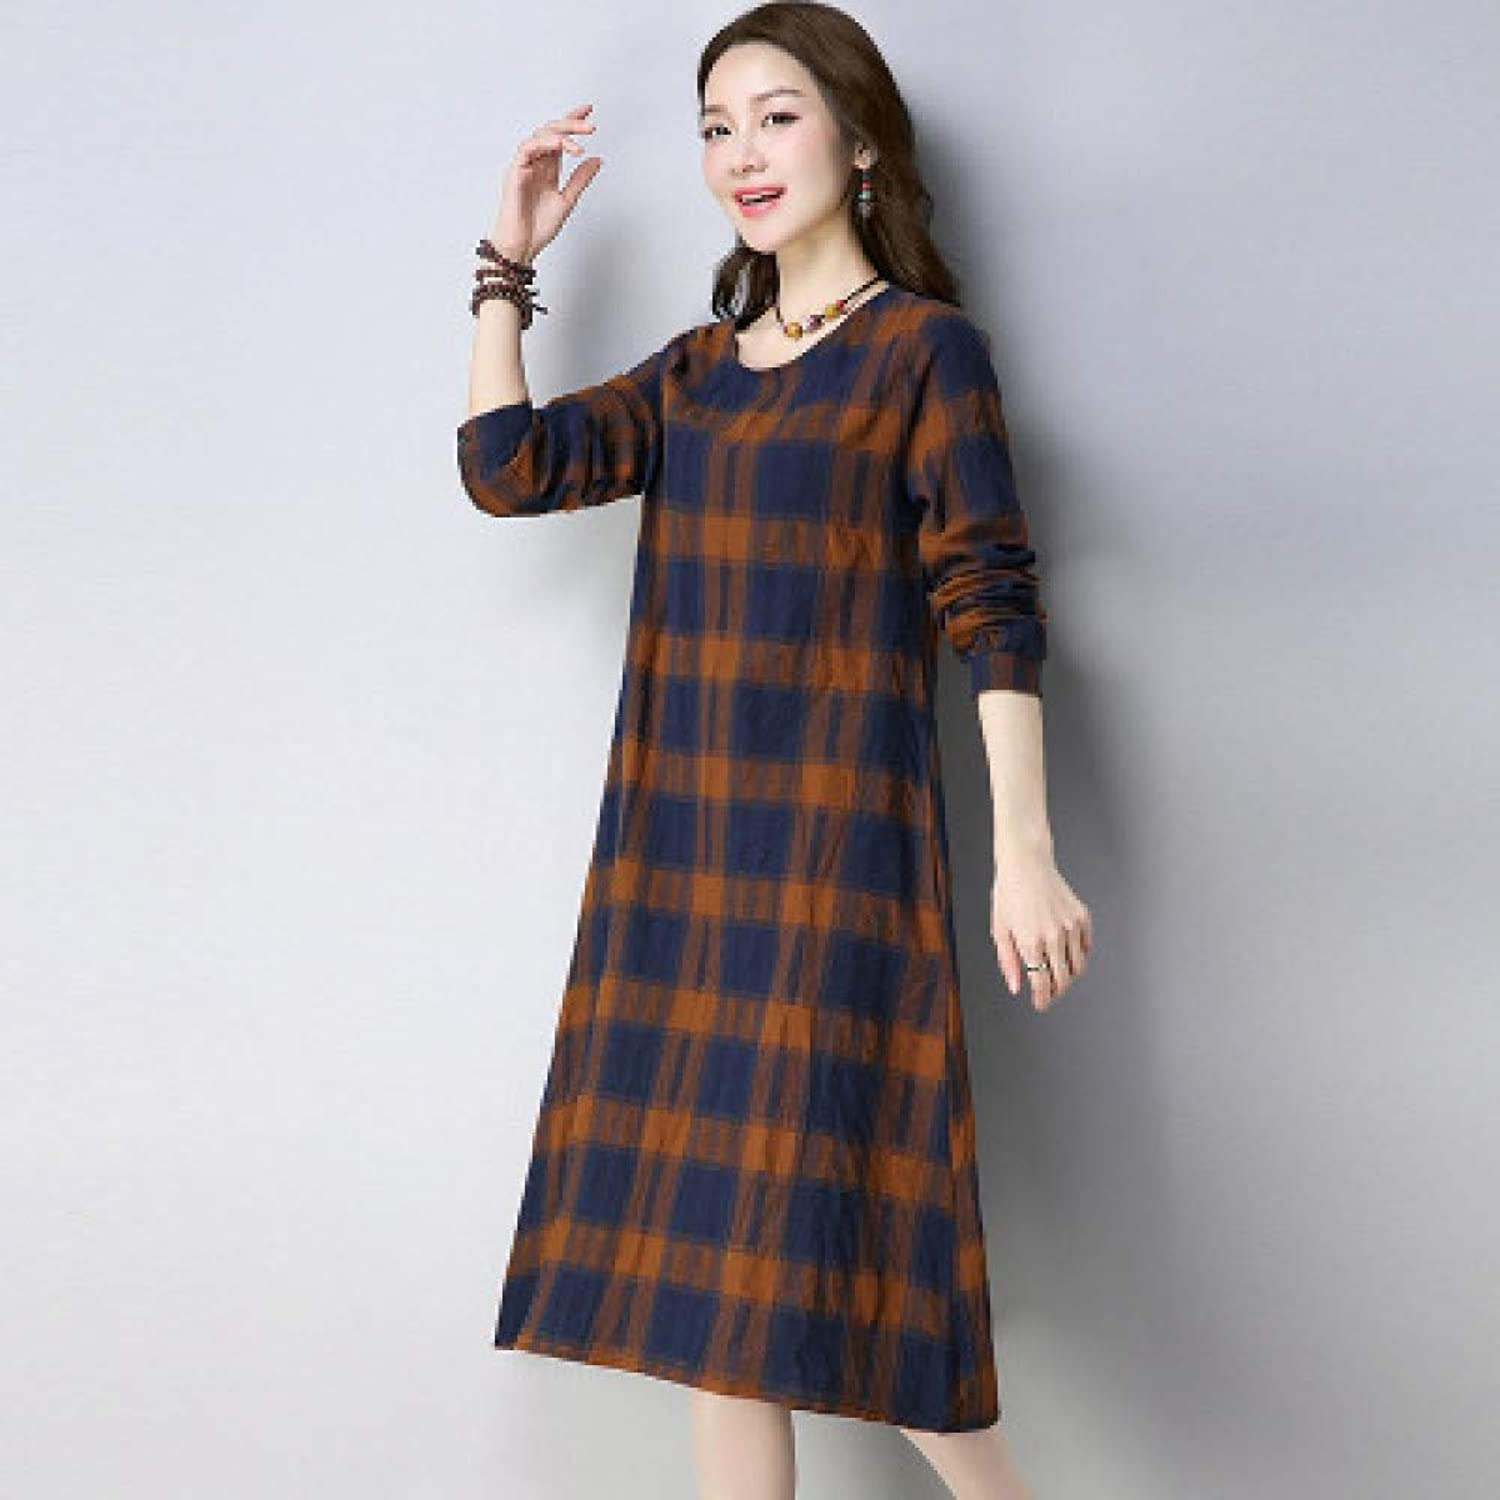 Cxlyq Dresses Large Size ALine Skirt in Long Section Long Sleeve Cotton and Linen Dress